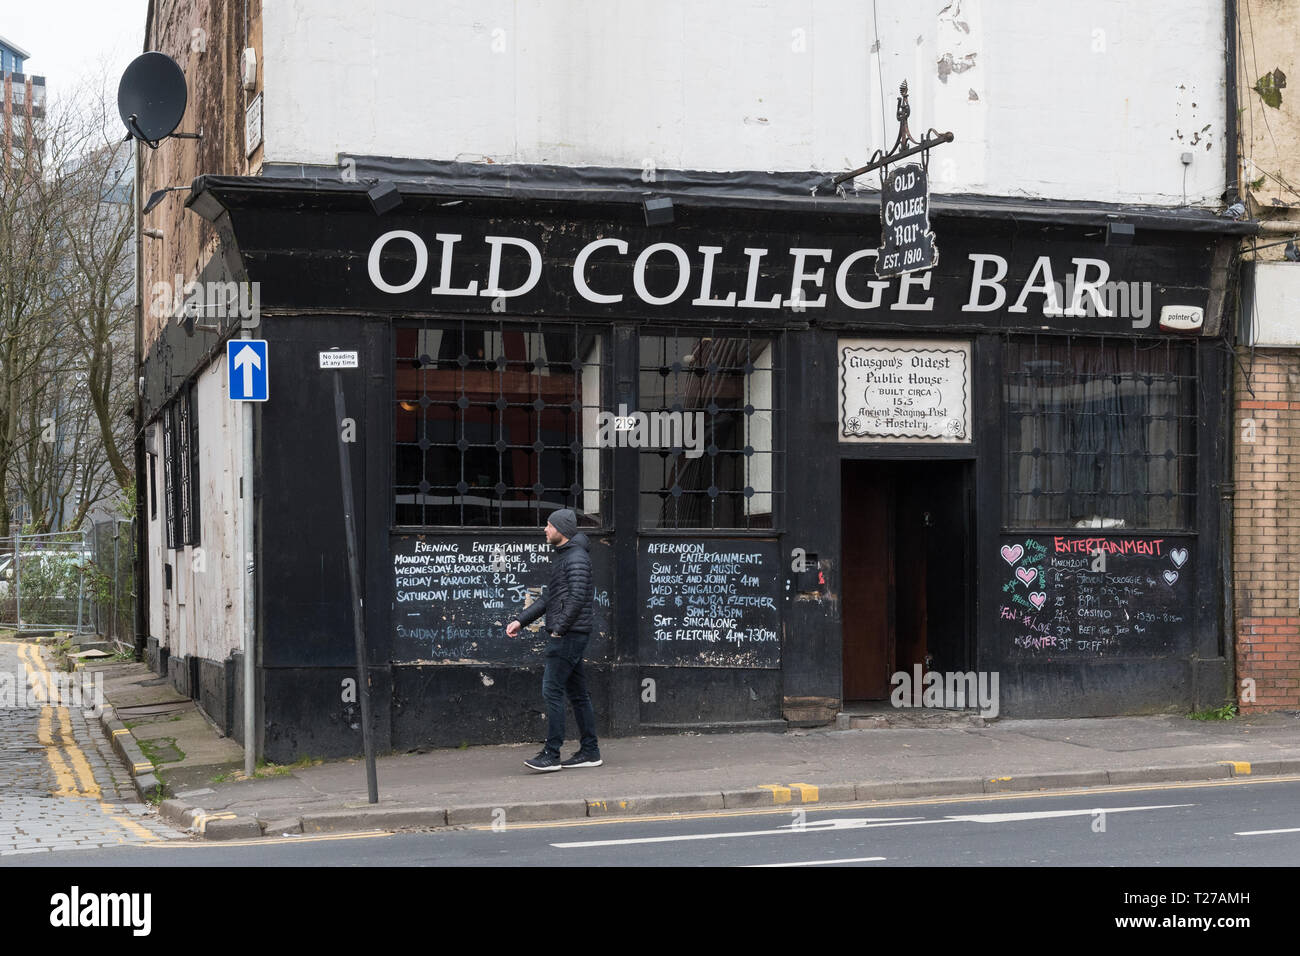 Old College Bar, High Street, Glasgow, Scotland, UK Stock Photo